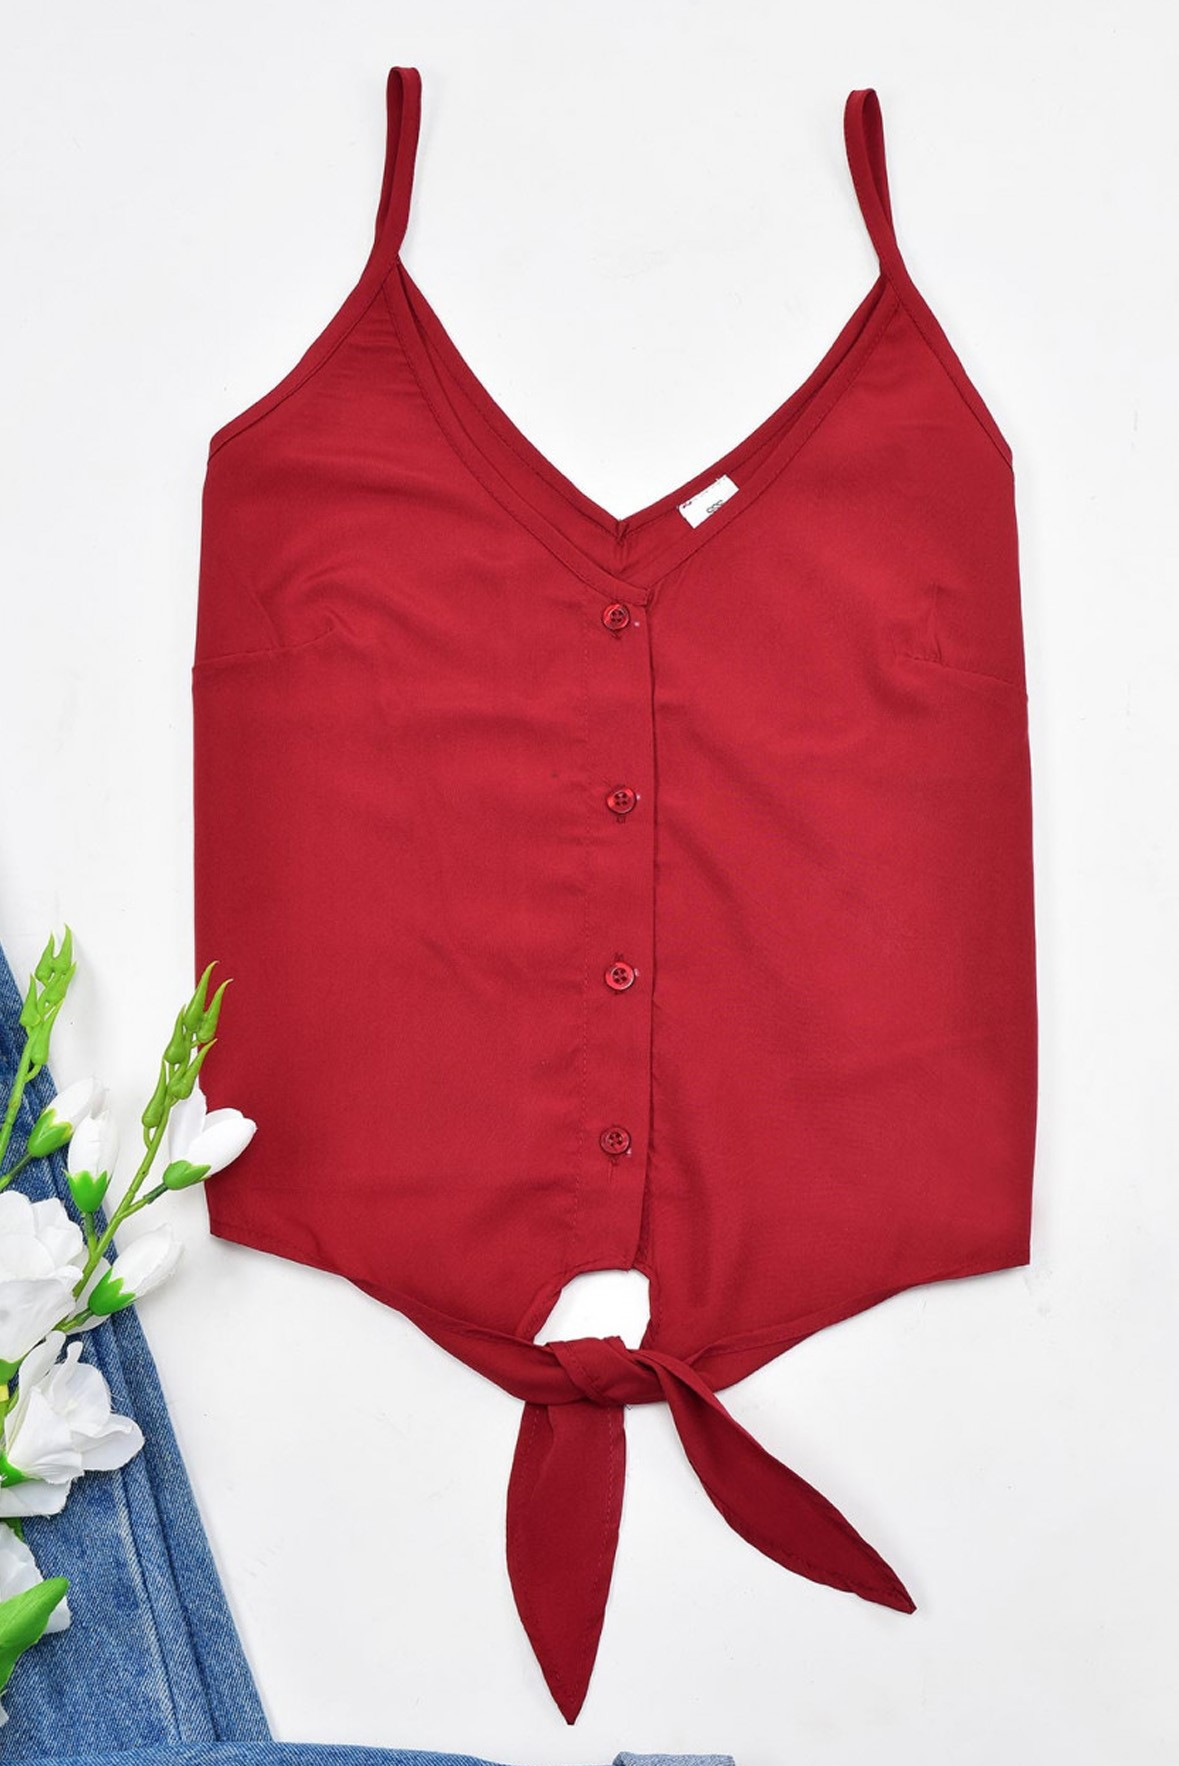 Knotted Red Top